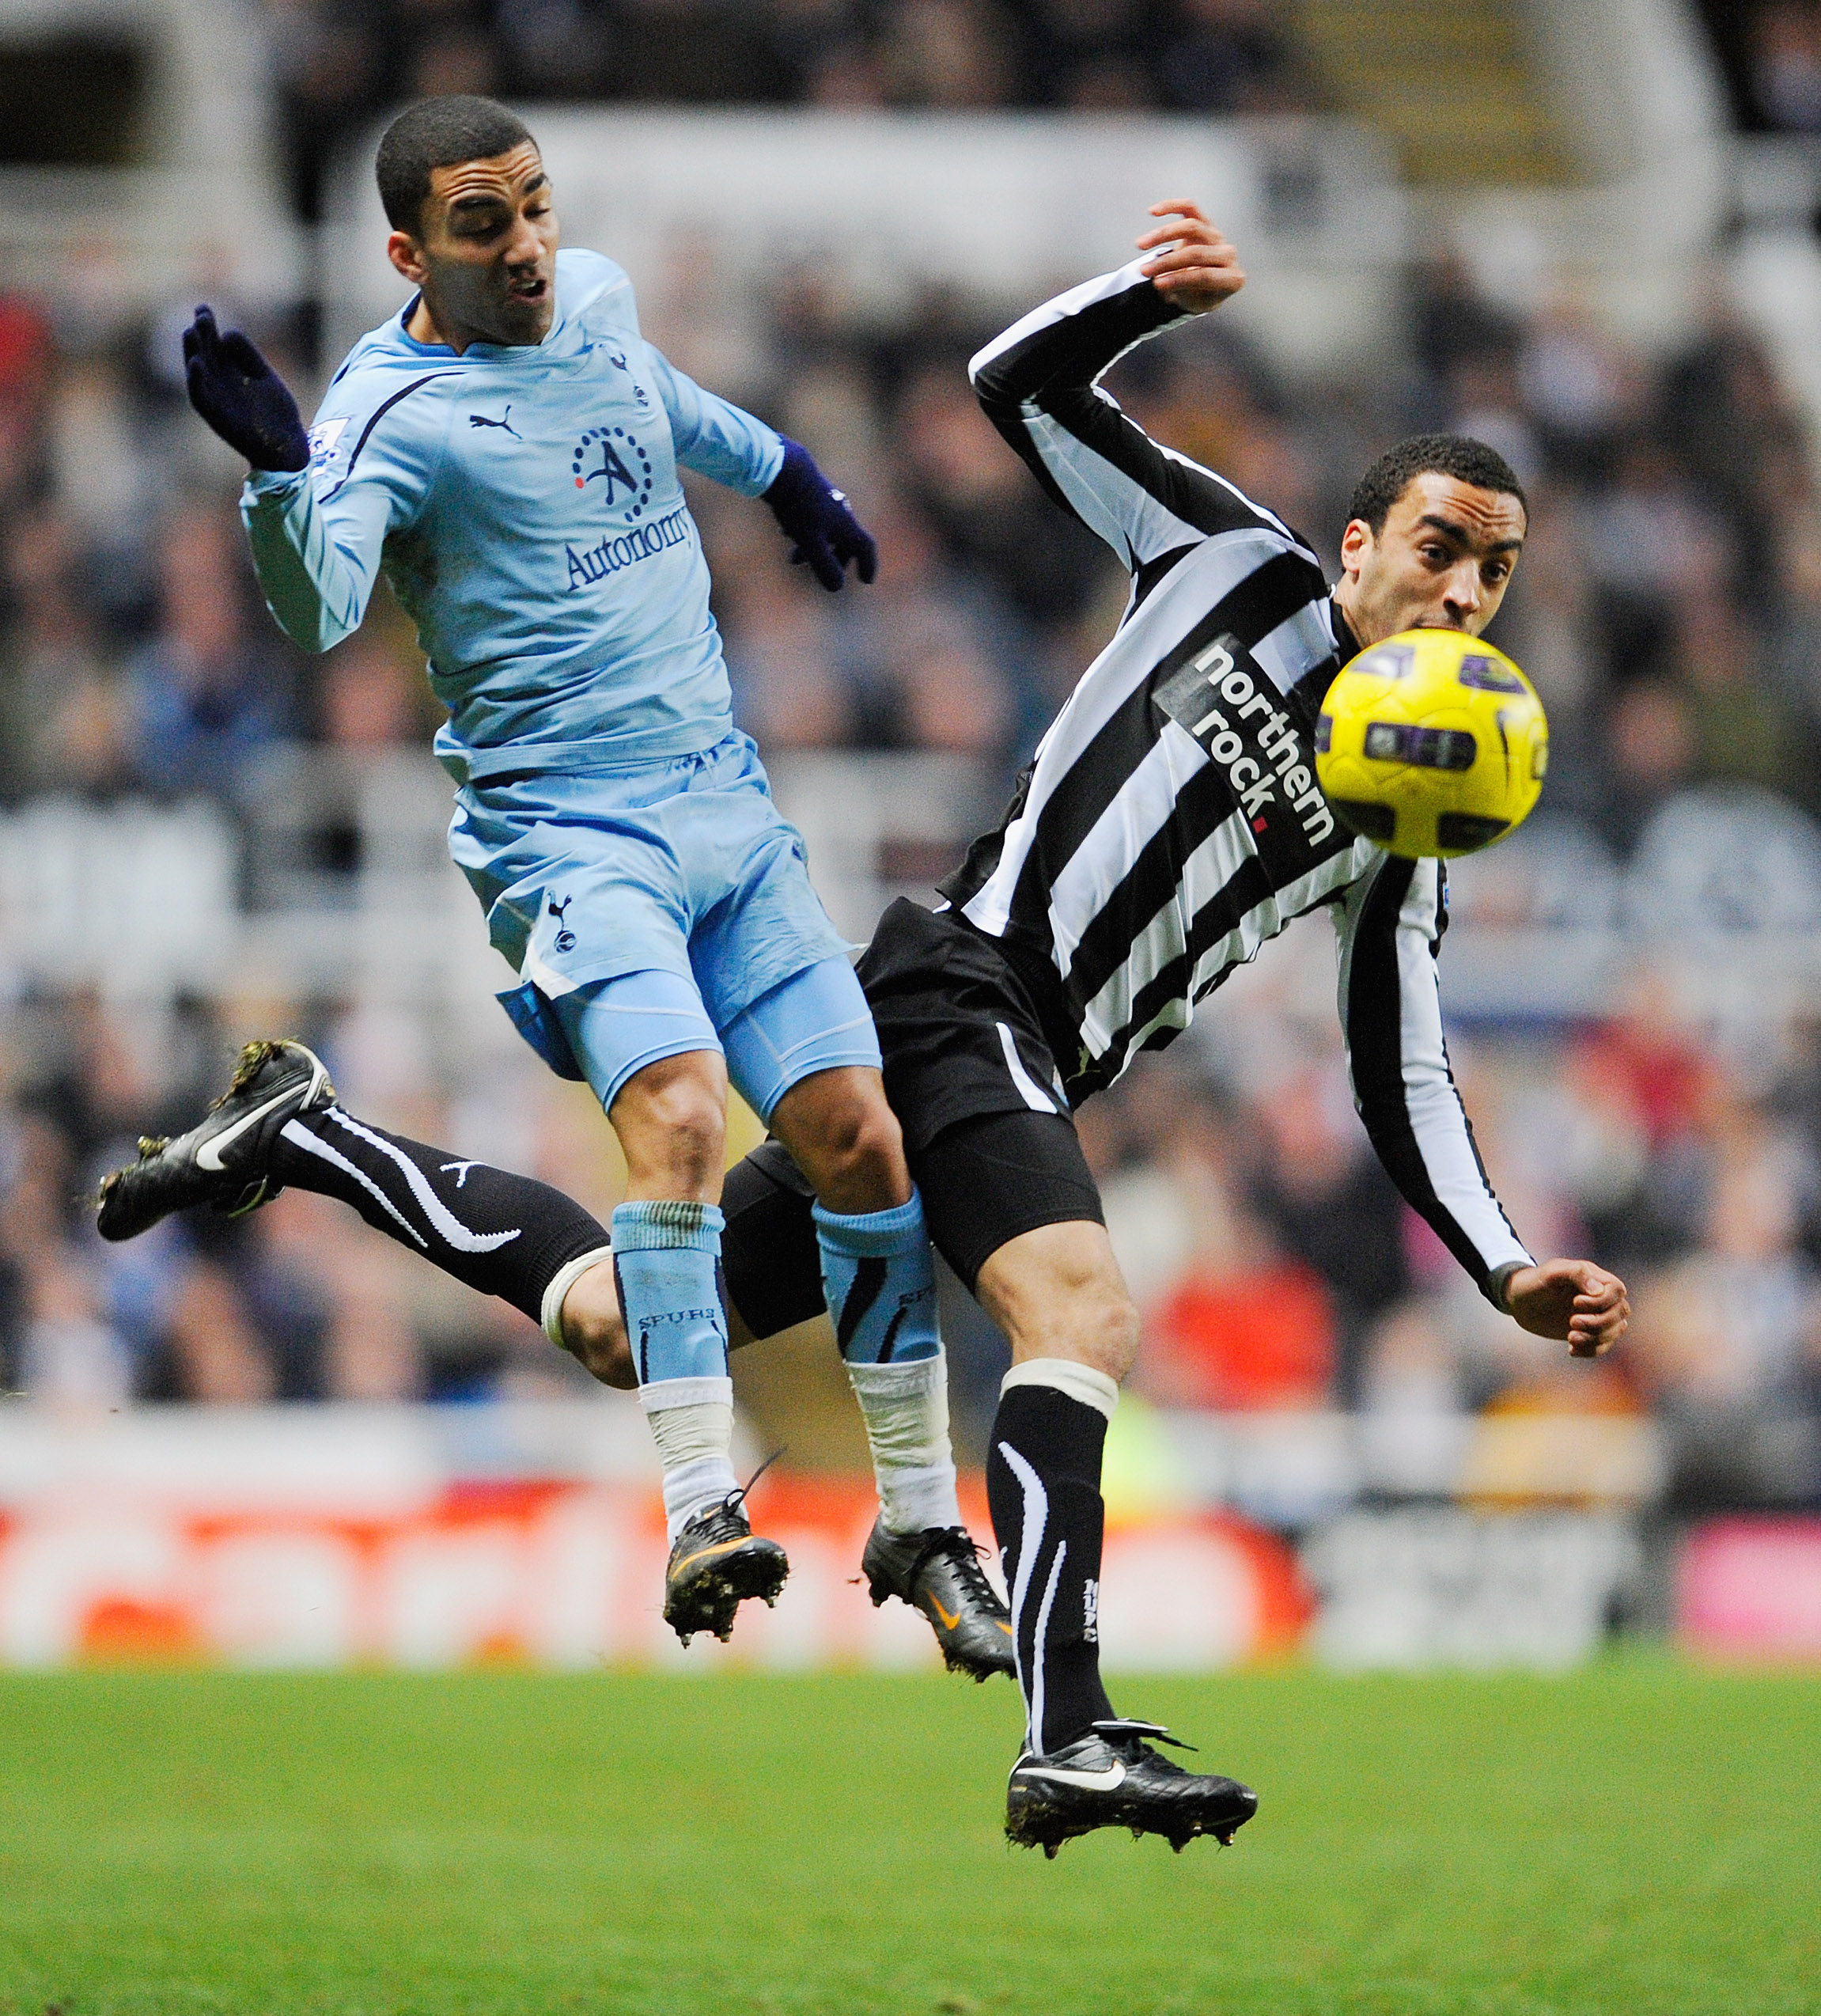 NEWCASTLE UPON TYNE, ENGLAND - JANUARY 22:  Aaron Lennon of Spurs is challenged by James Perch of Newcastle during the Barclays Premier League match between Newcastle United and Tottenham Hotspur at St James' Park on January 22, 2011 in Newcastle upon Tyn